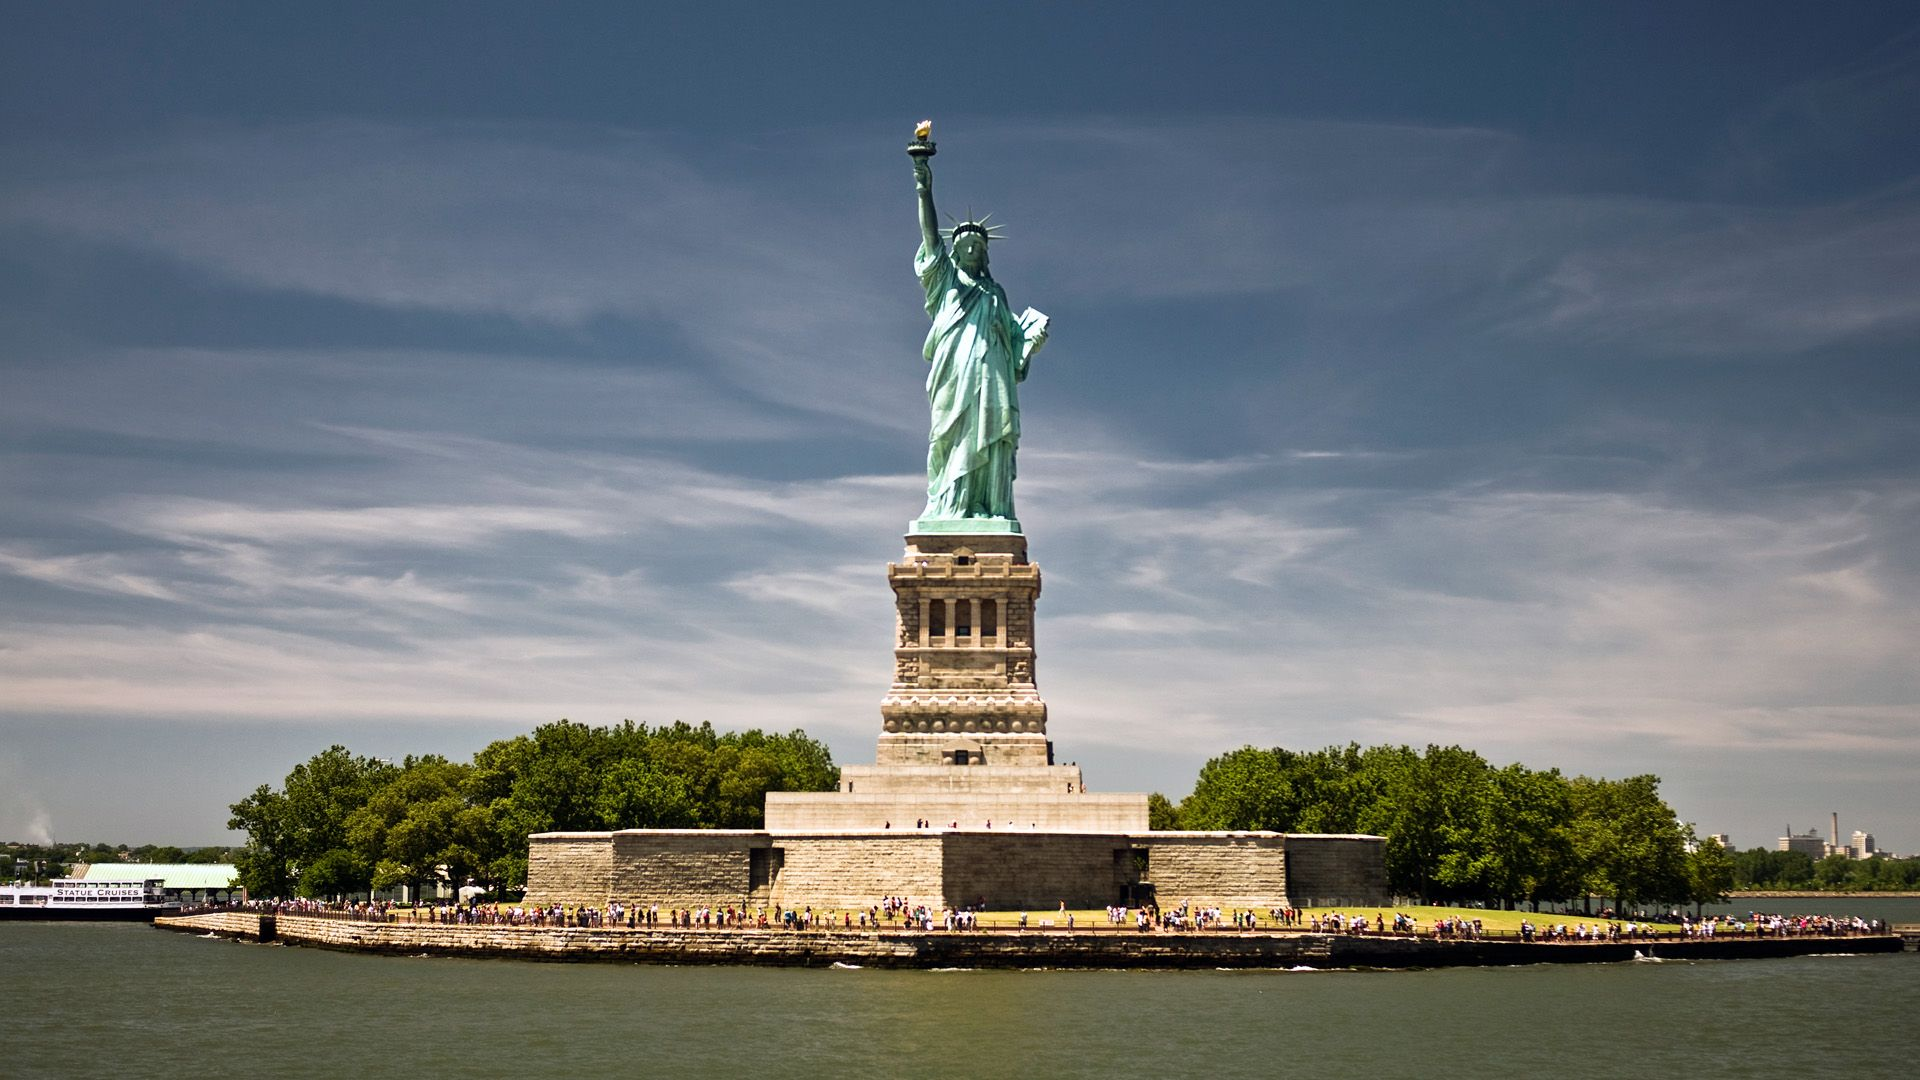 Statue Of Liberty 1920x1080px Hd Desktop Wallpapers Widescreen